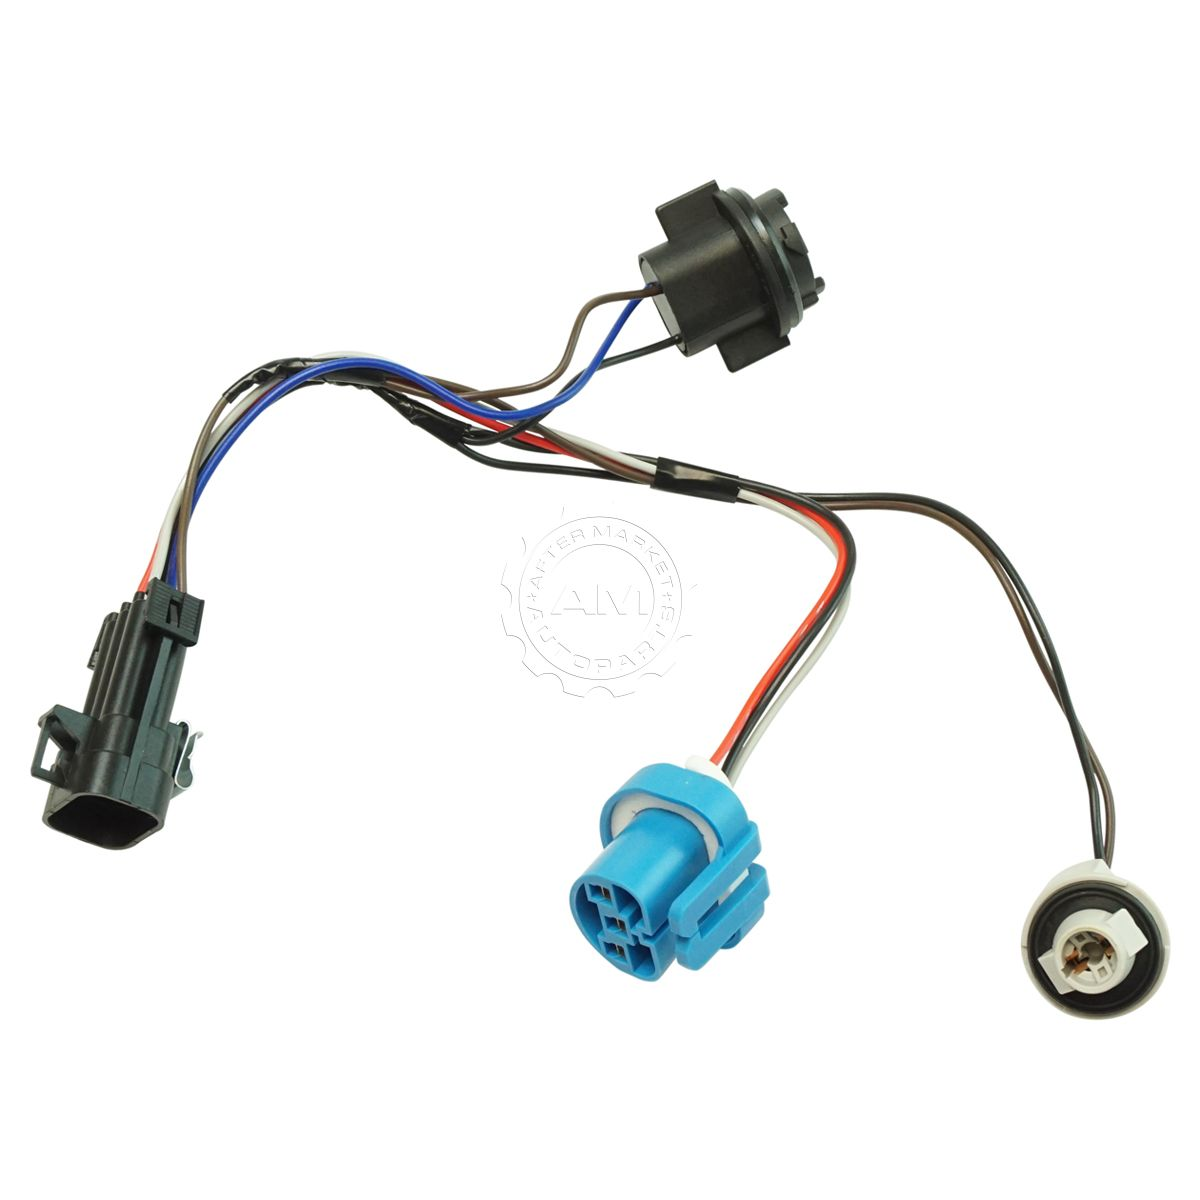 dorman headlight wiring harness or side for chevy cobalt pontiac g5 rh ebay com headlight wiring harness upgrade headlight wiring harness diagram